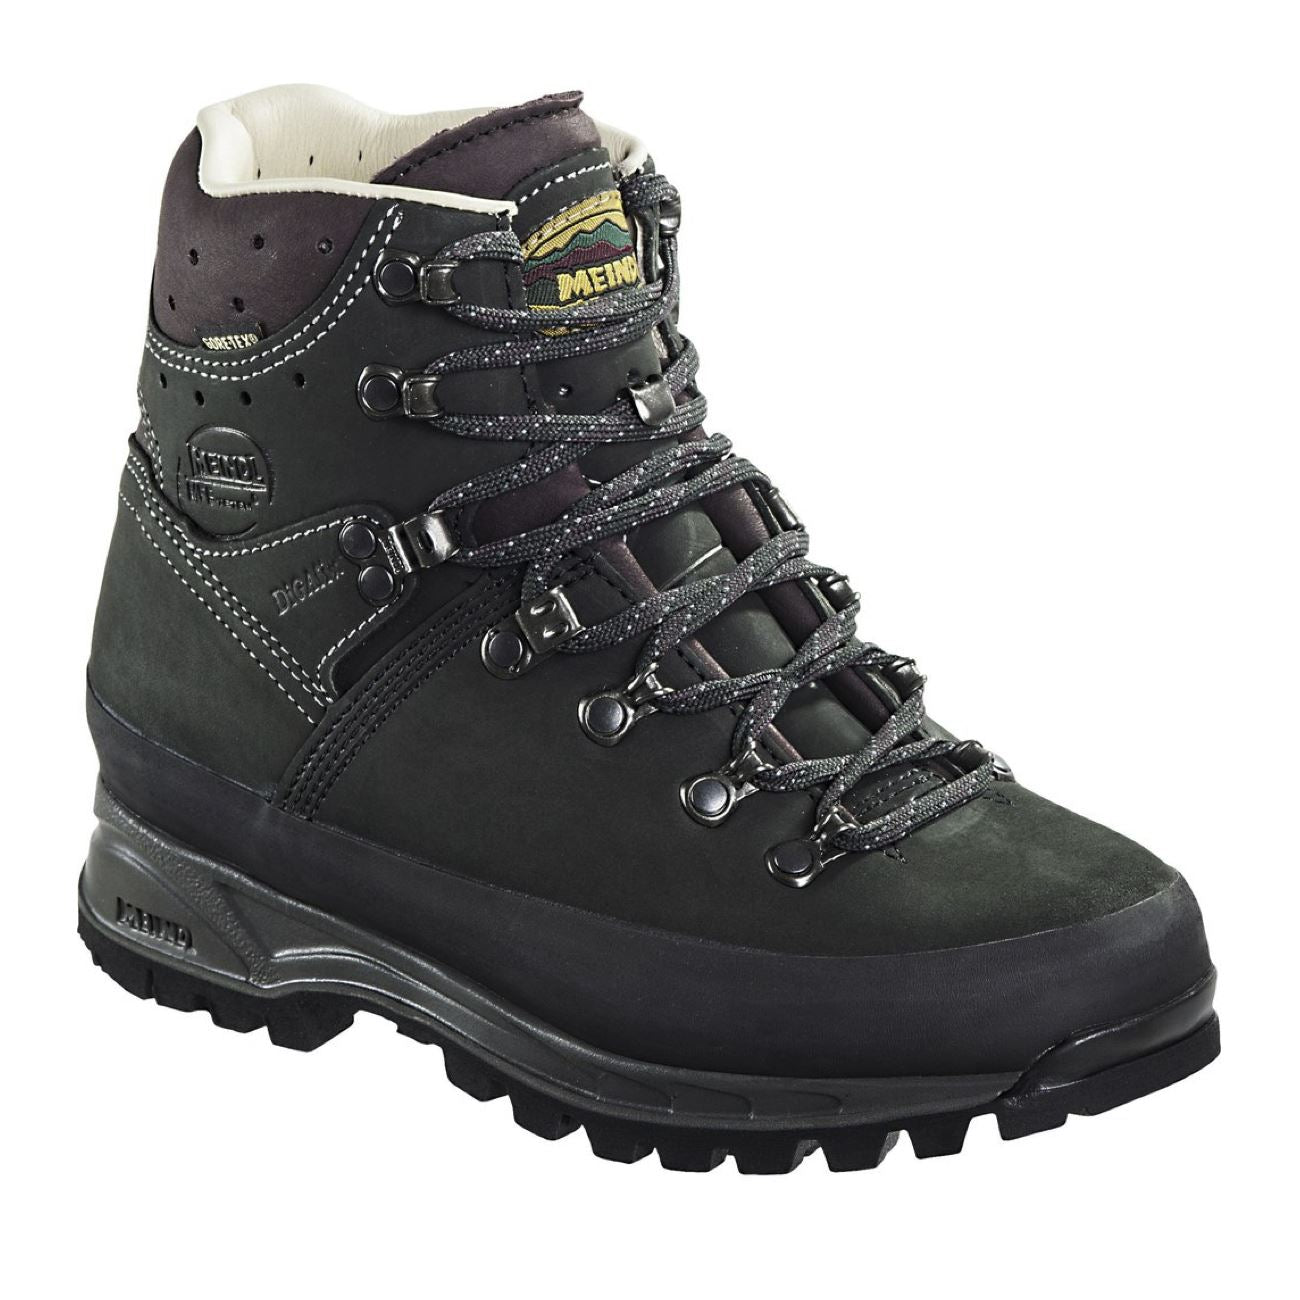 Meindl, Island Lady MFS Active, Medium Fit, Nubuck Leather / Gortex, Anthracite Bordeaux Hiking Boots Meindl Anthracite Bordeaux 6